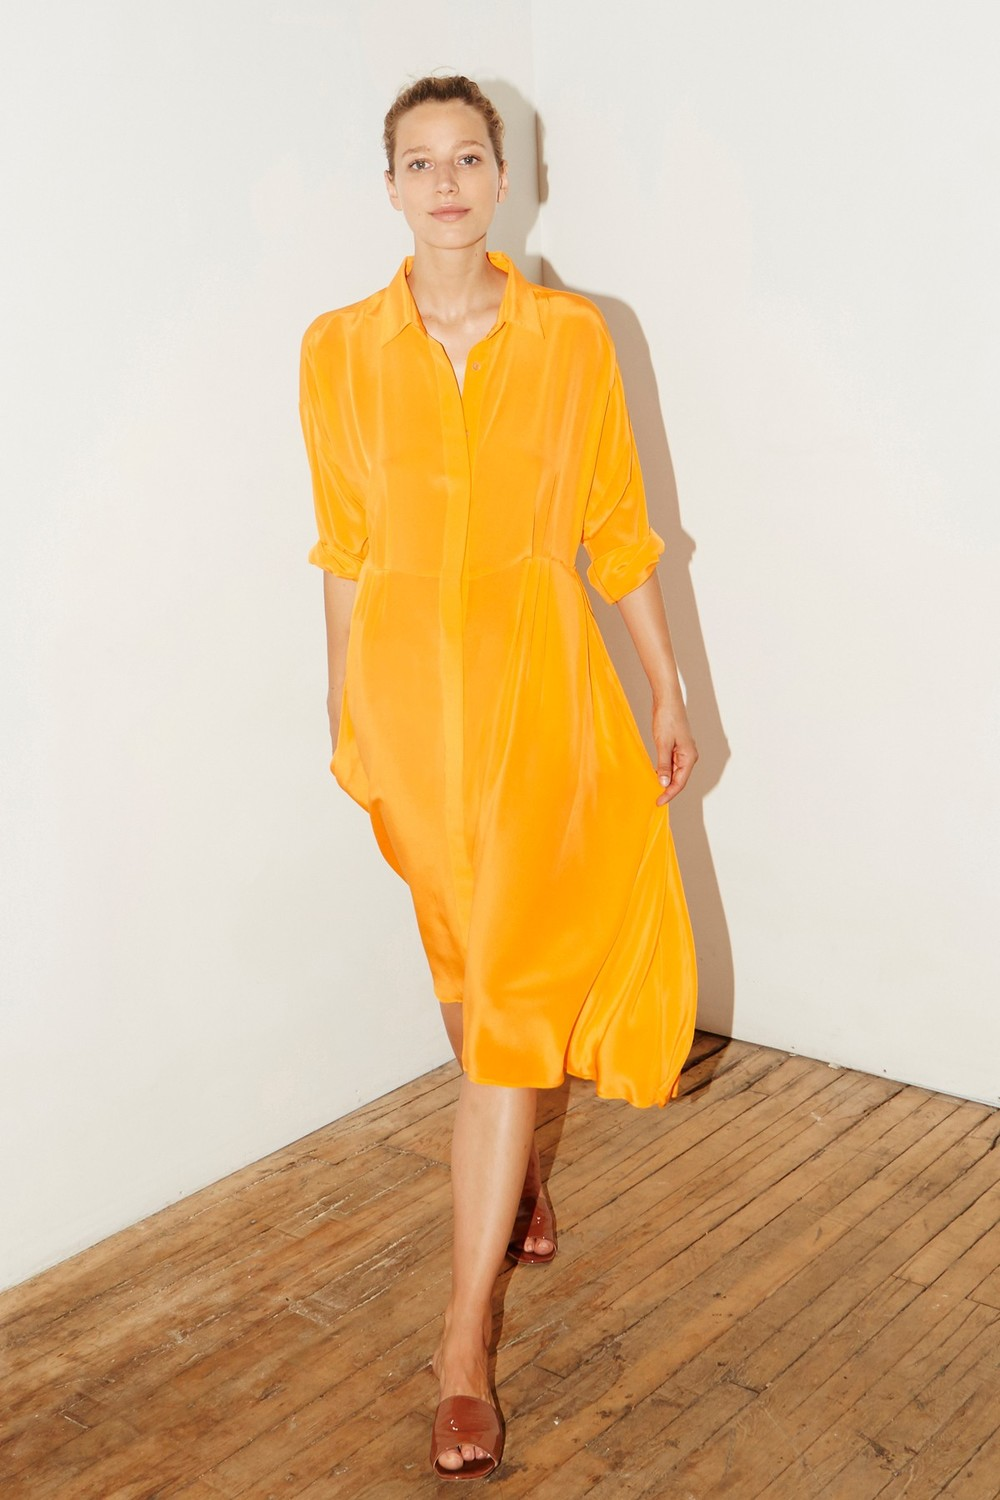 DATURA - Citric Orange Silk Shirt